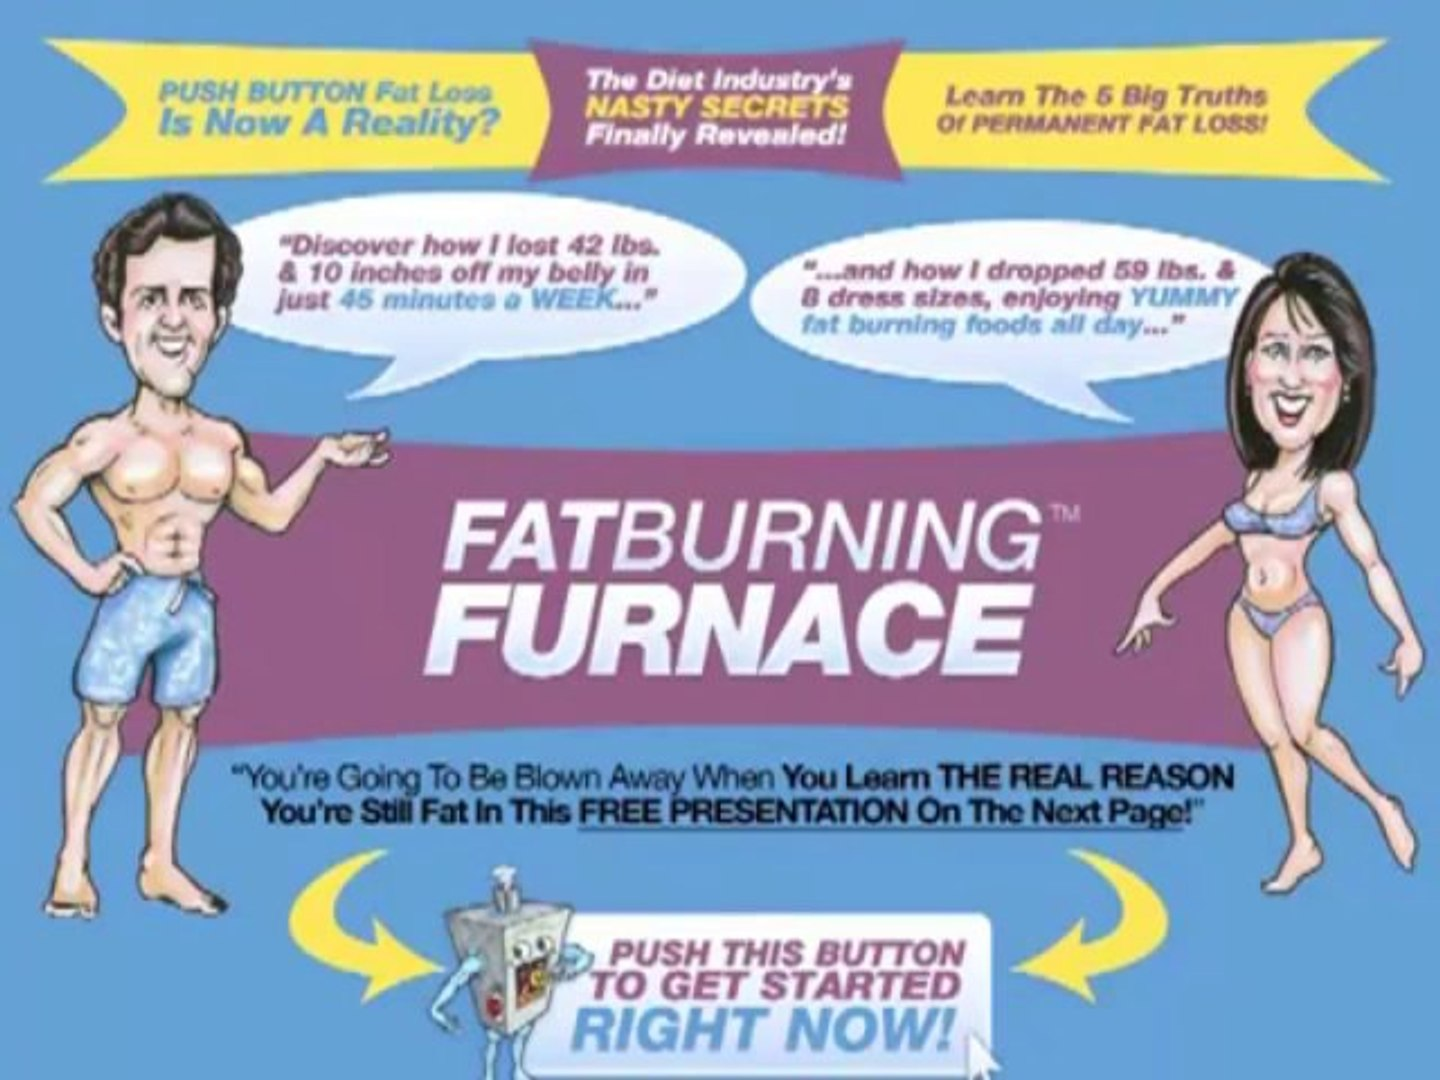 Shocking Fat Burning Furnace Review Fat Burning Furnace Reveal The Truth [LEAKED]